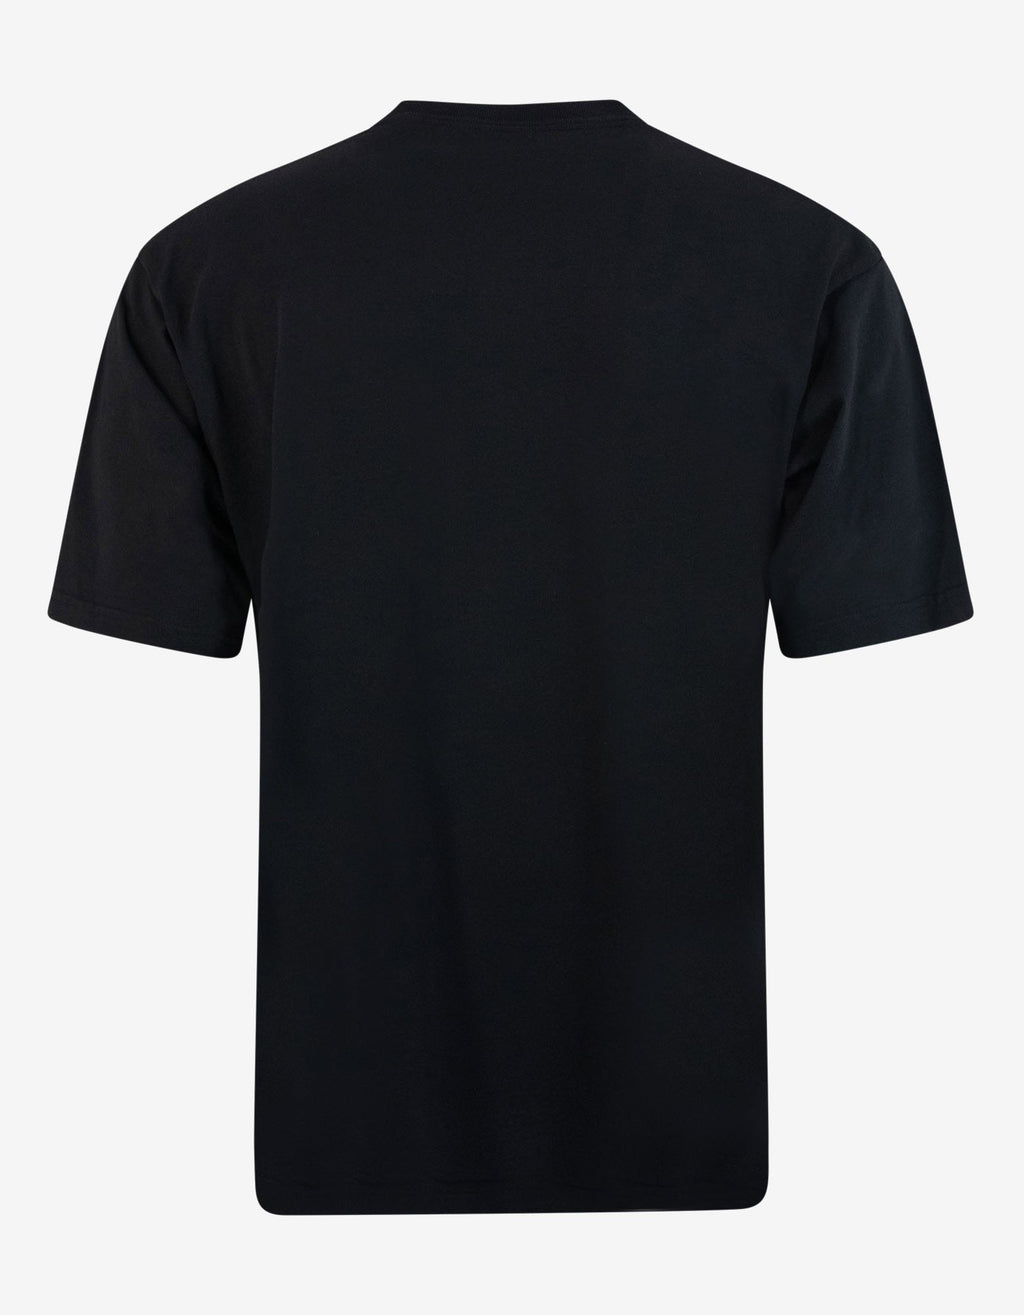 Black Uniform Large Fit T-Shirt -